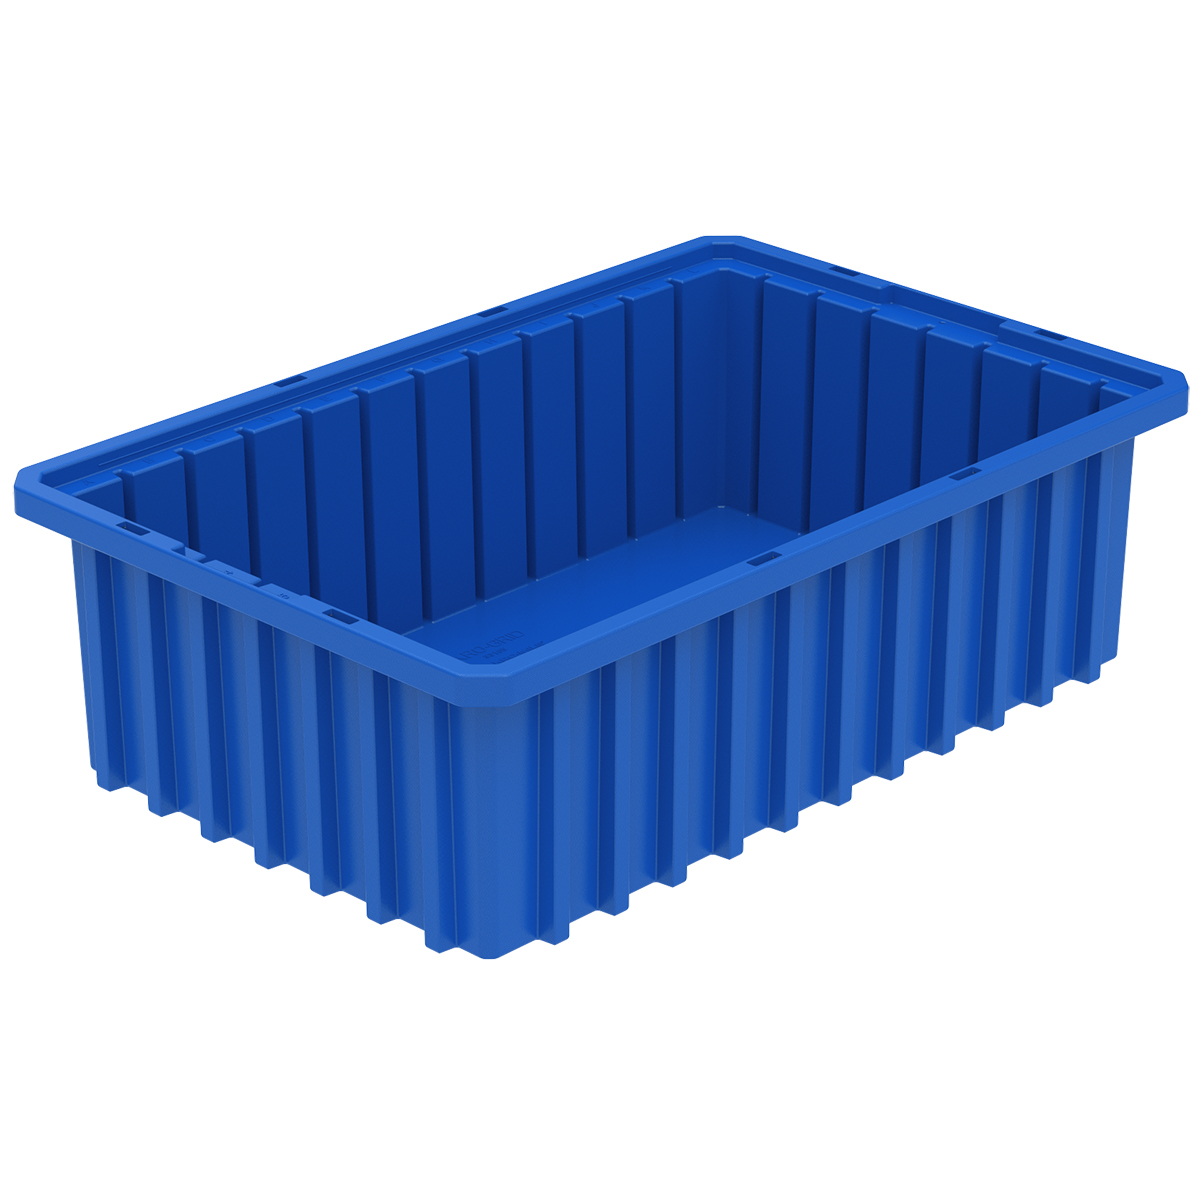 Akro-Grid Dividable Box 16-1/2 x 10-7/8 x 5, Blue.  This item sold in carton quantities of 12.